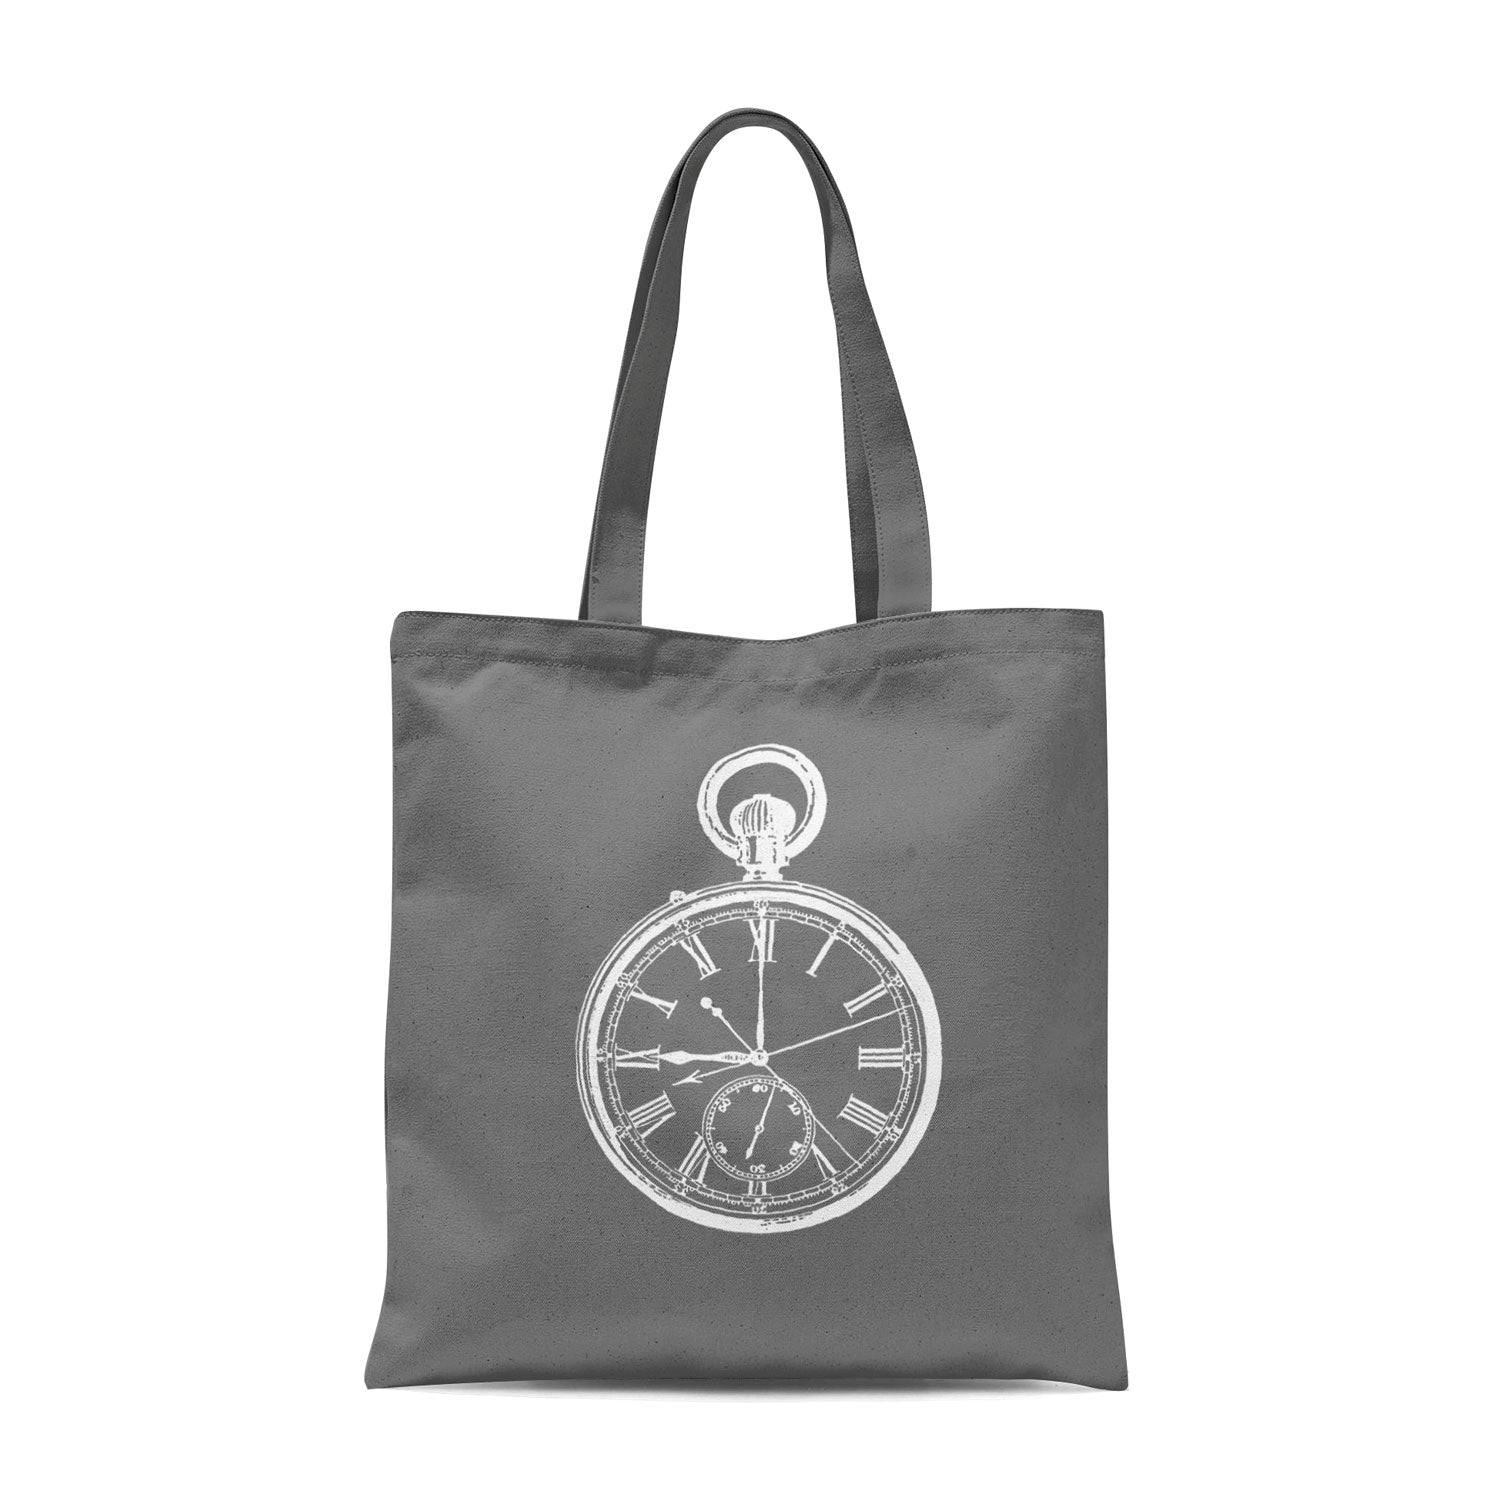 grey tote bag with white pocket watch illustration